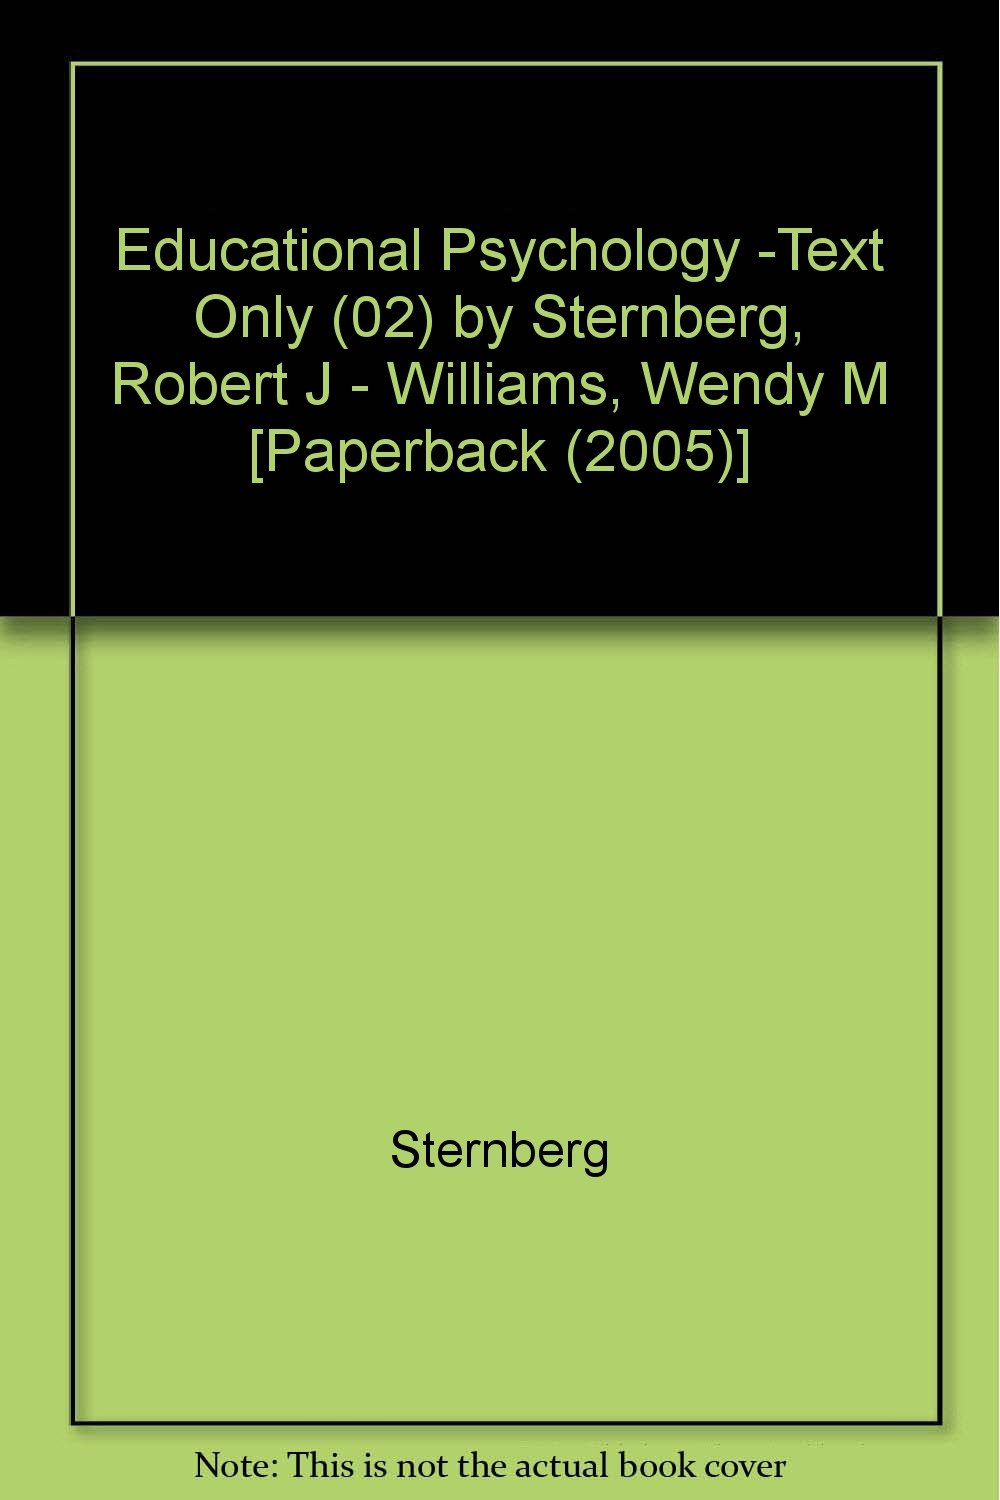 Download Educational Psychology -Text Only (02) by Sternberg, Robert J - Williams, Wendy M [Paperback (2005)] pdf